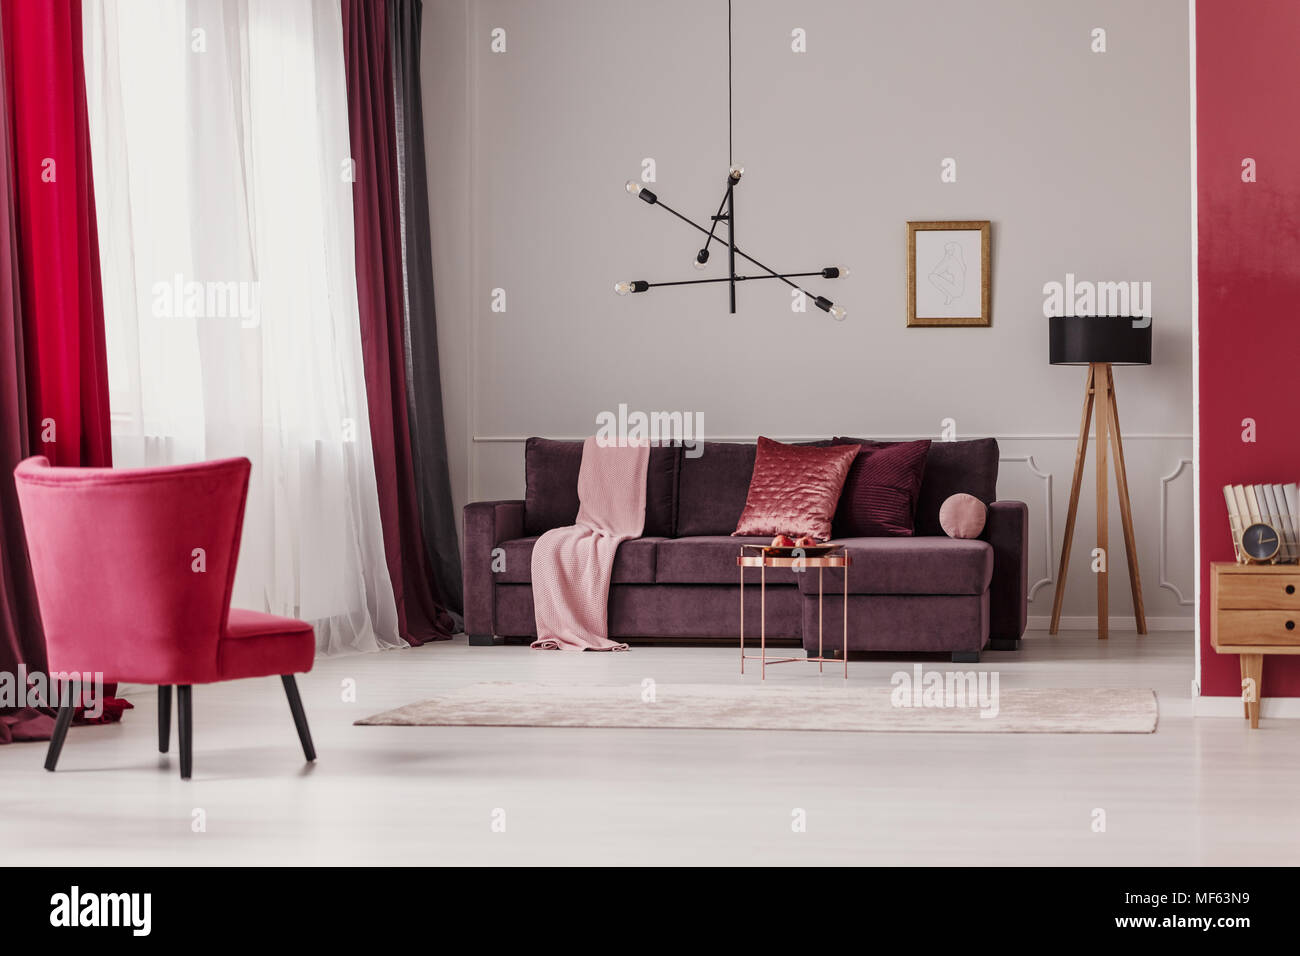 Red Chair And Poster In Spacious Living Room Interior With Purple